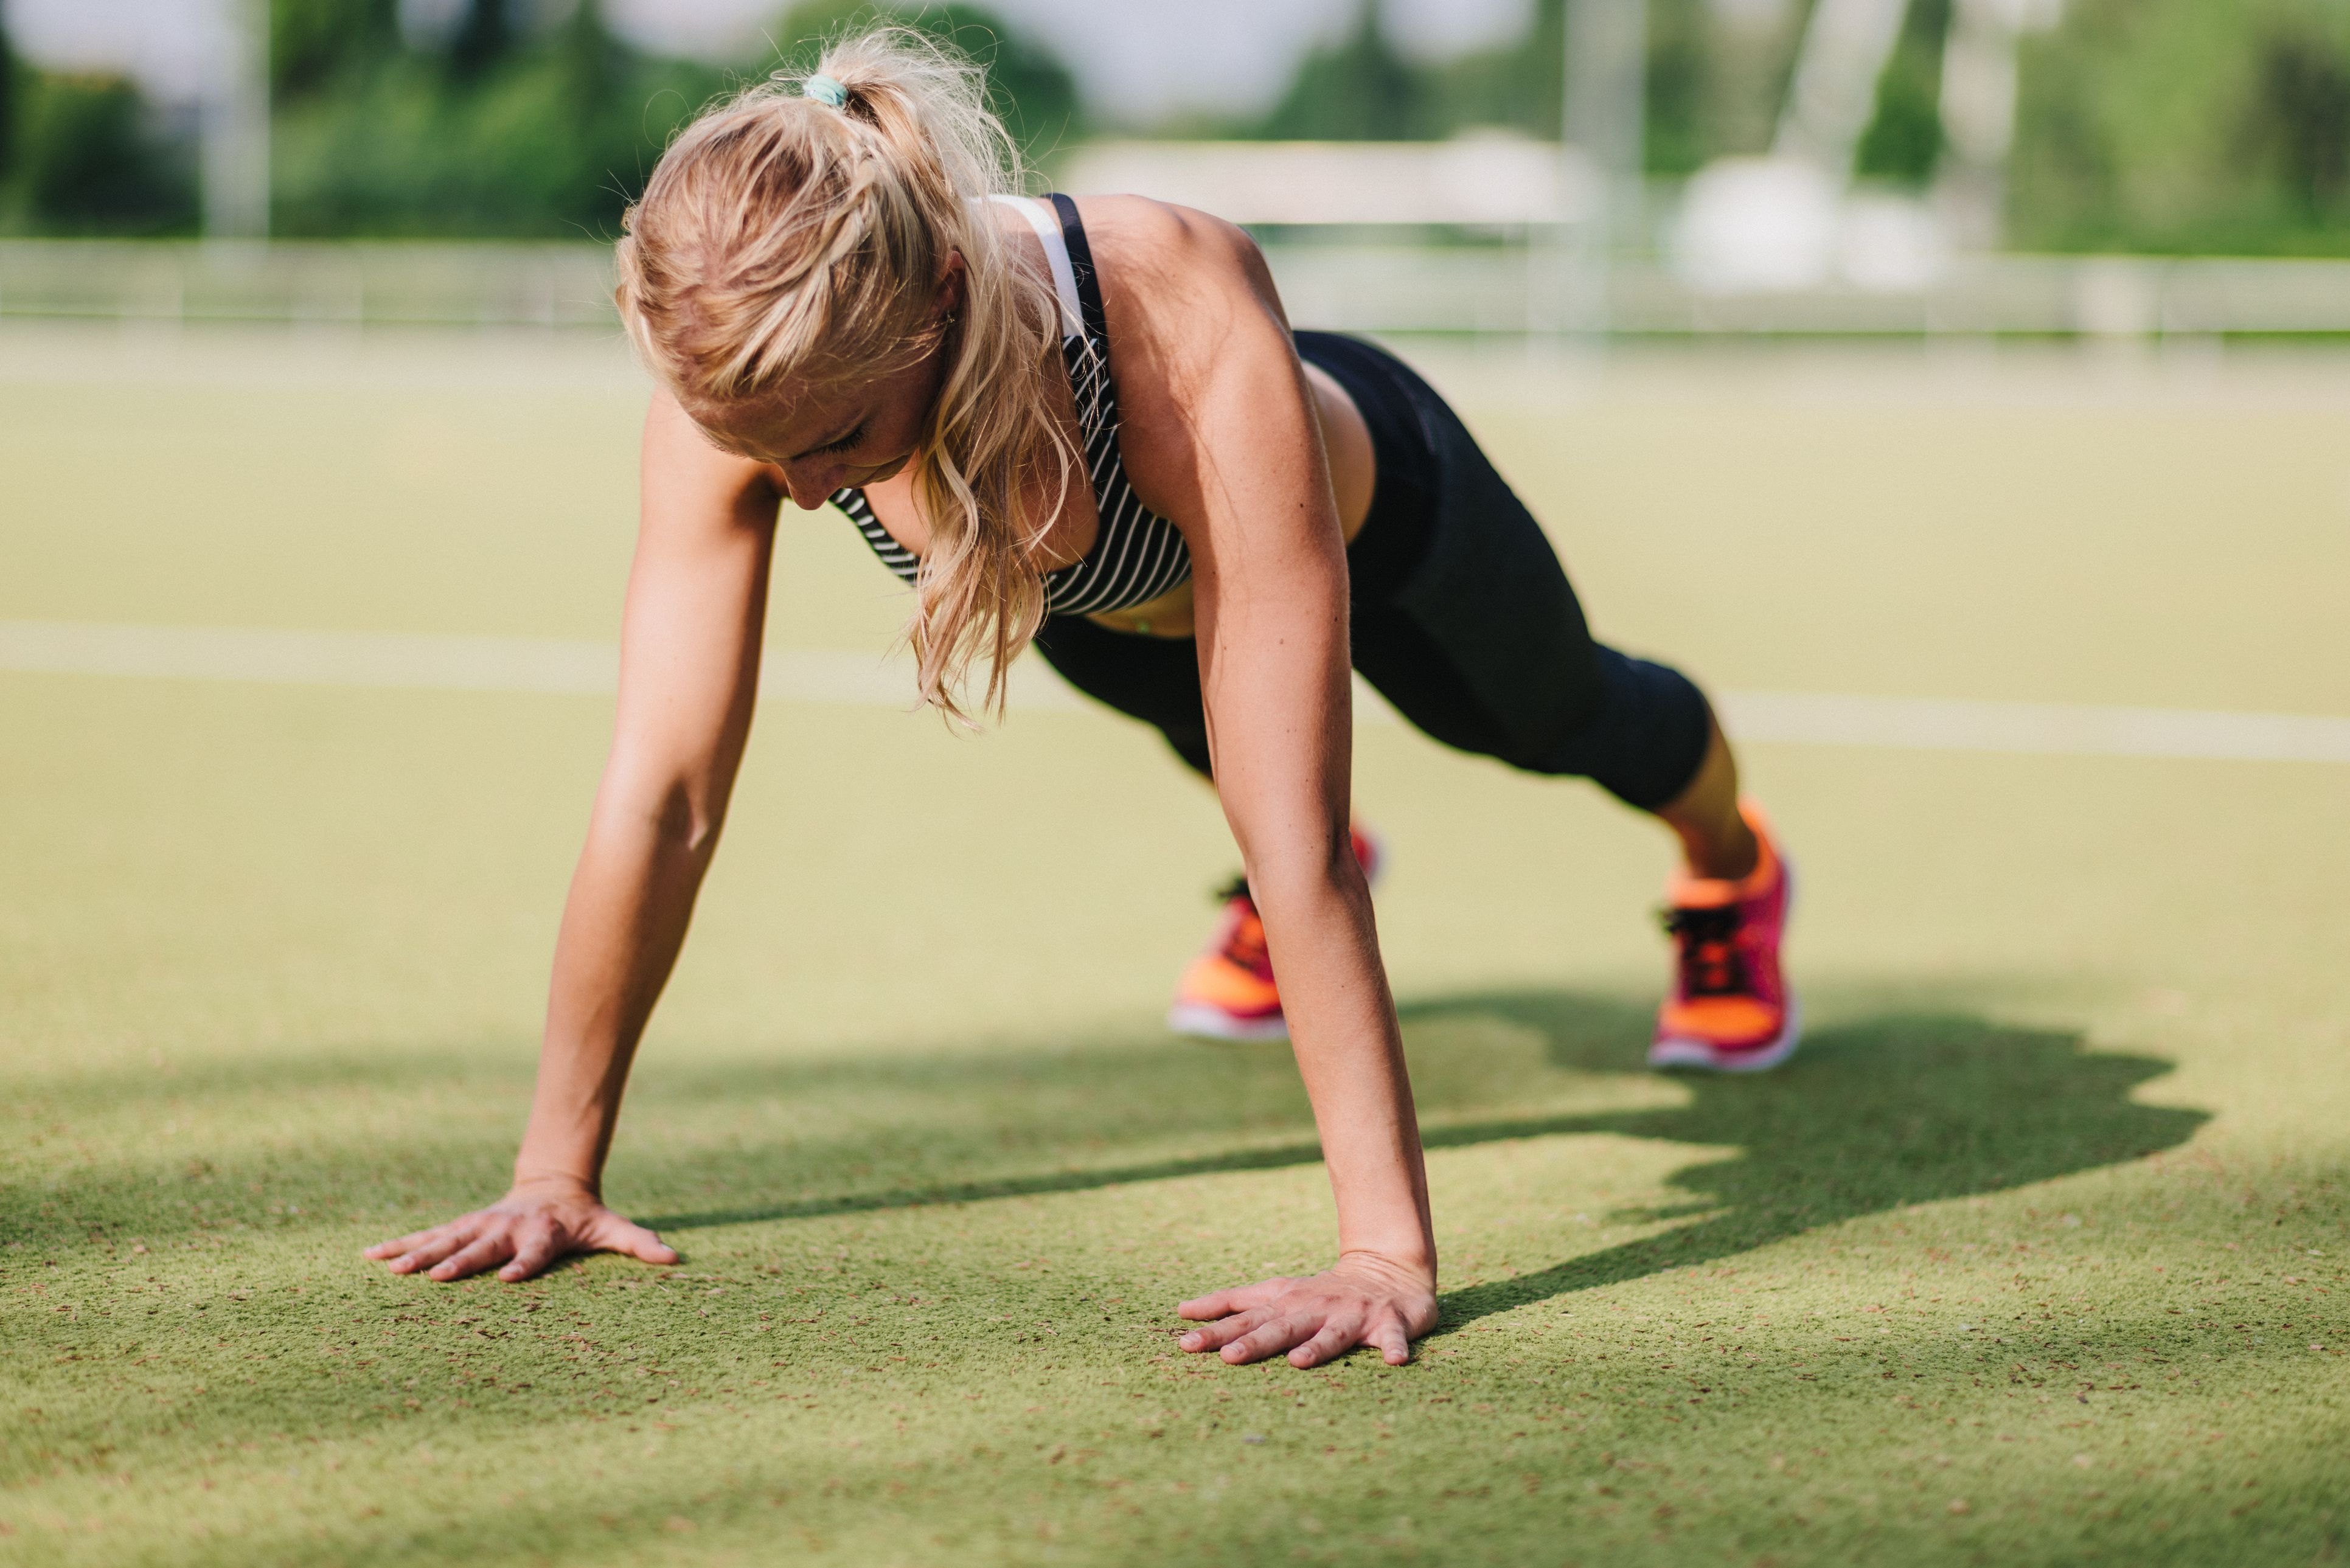 Total Body Workout with Gliding Discs